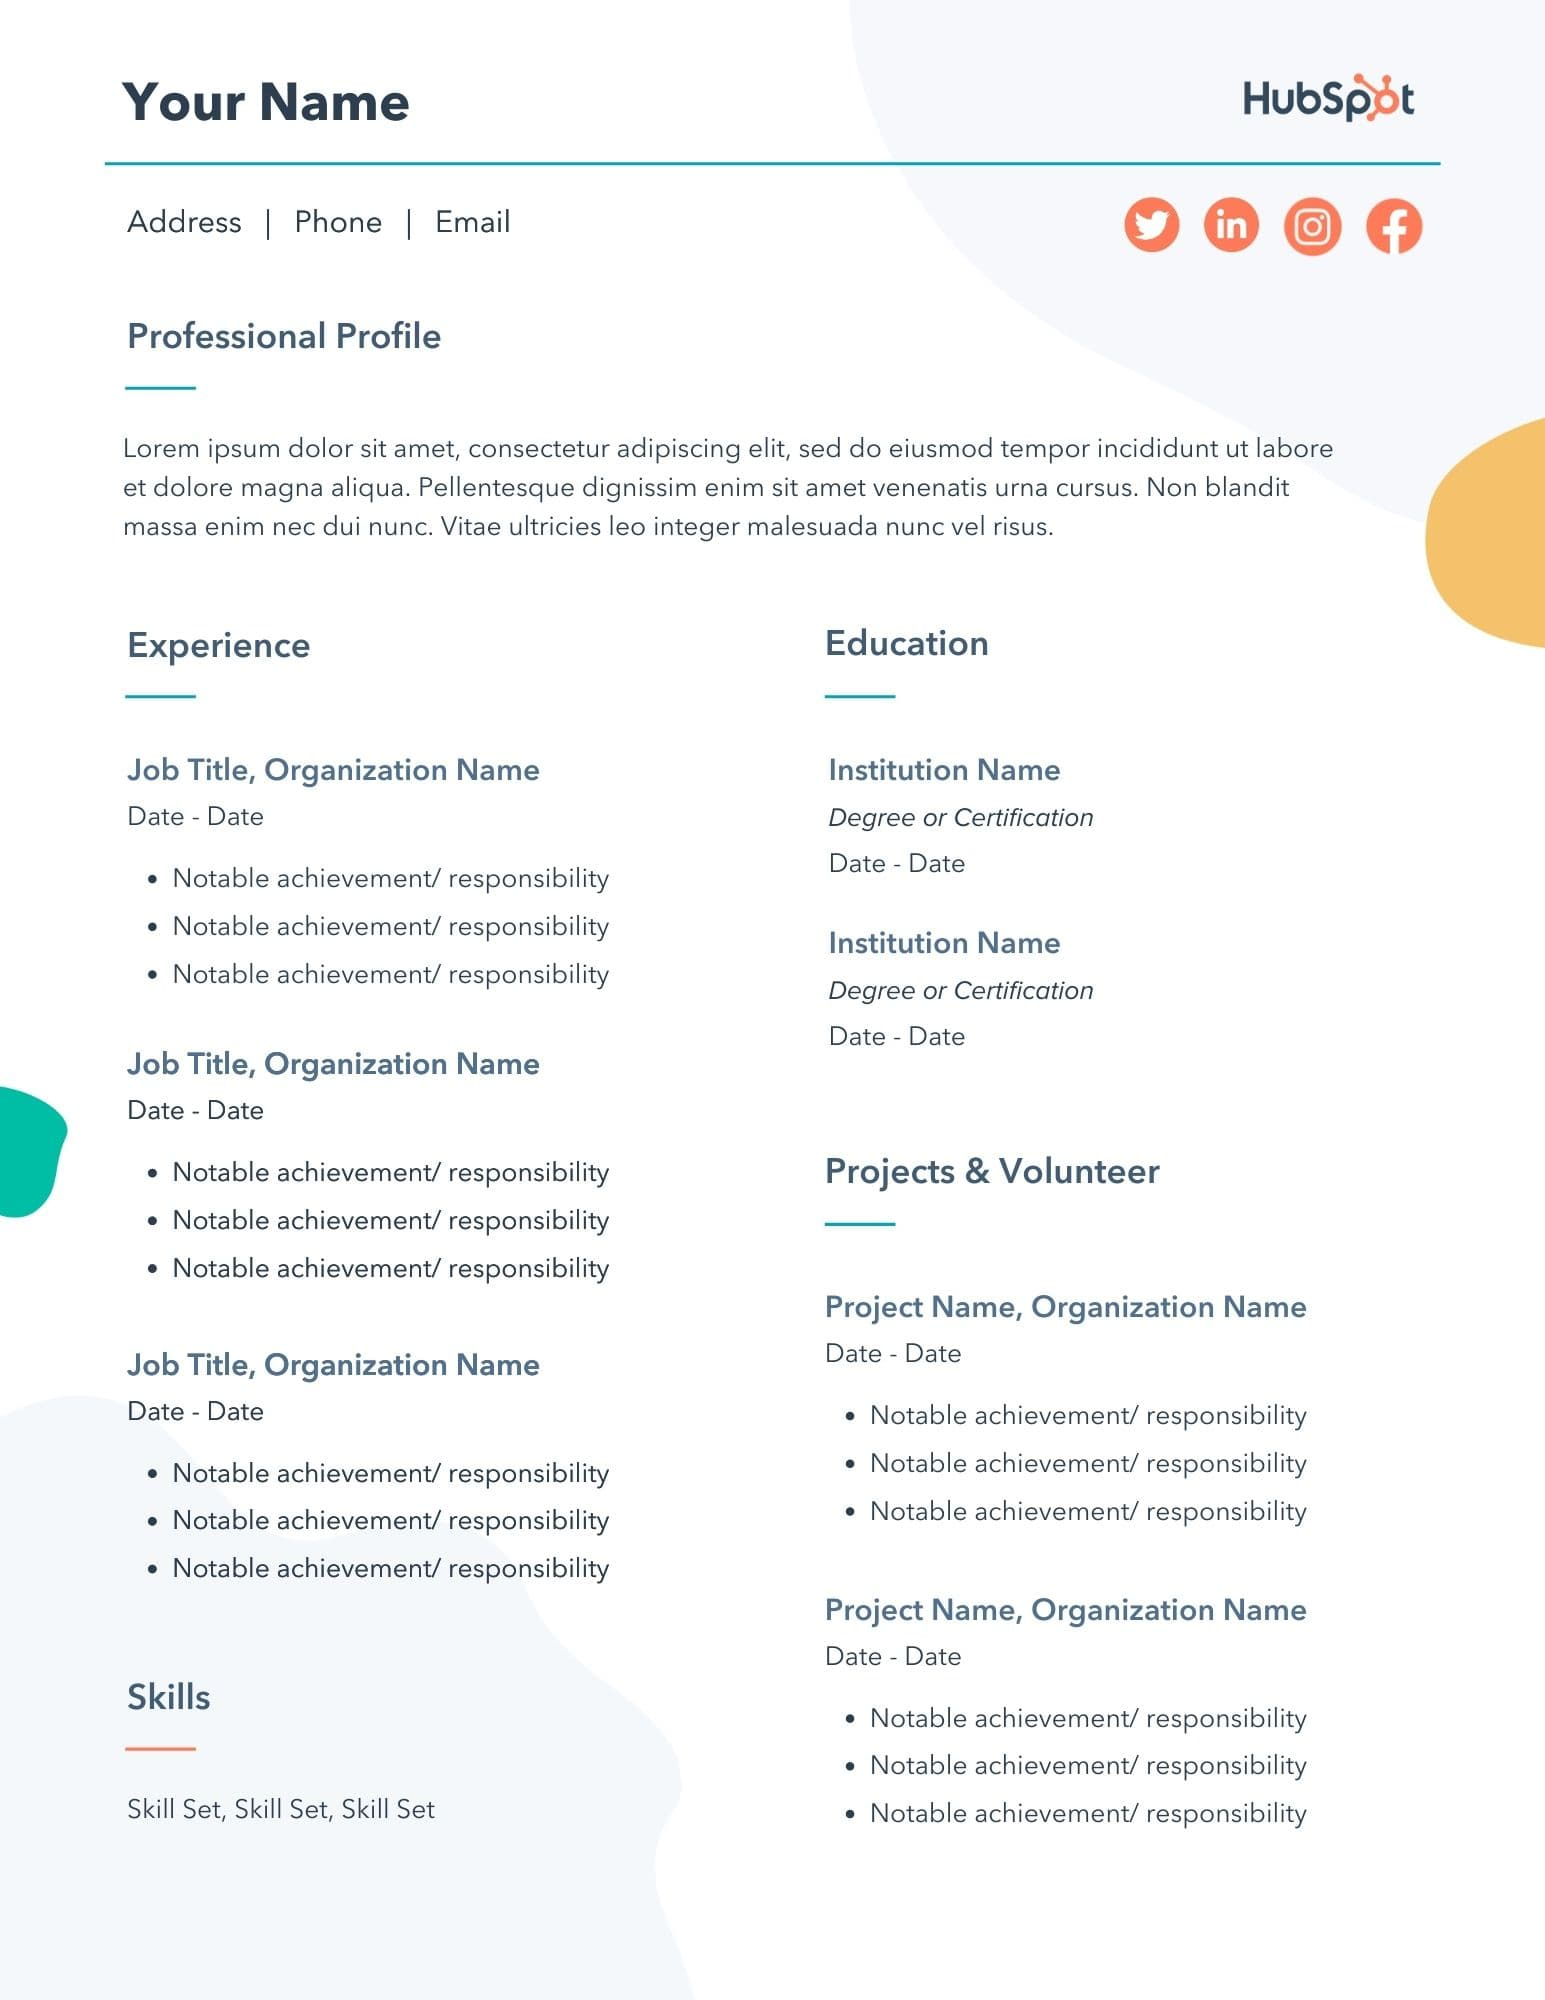 free resume templates for microsoft word to make your own design software template Resume Free Resume Design Software